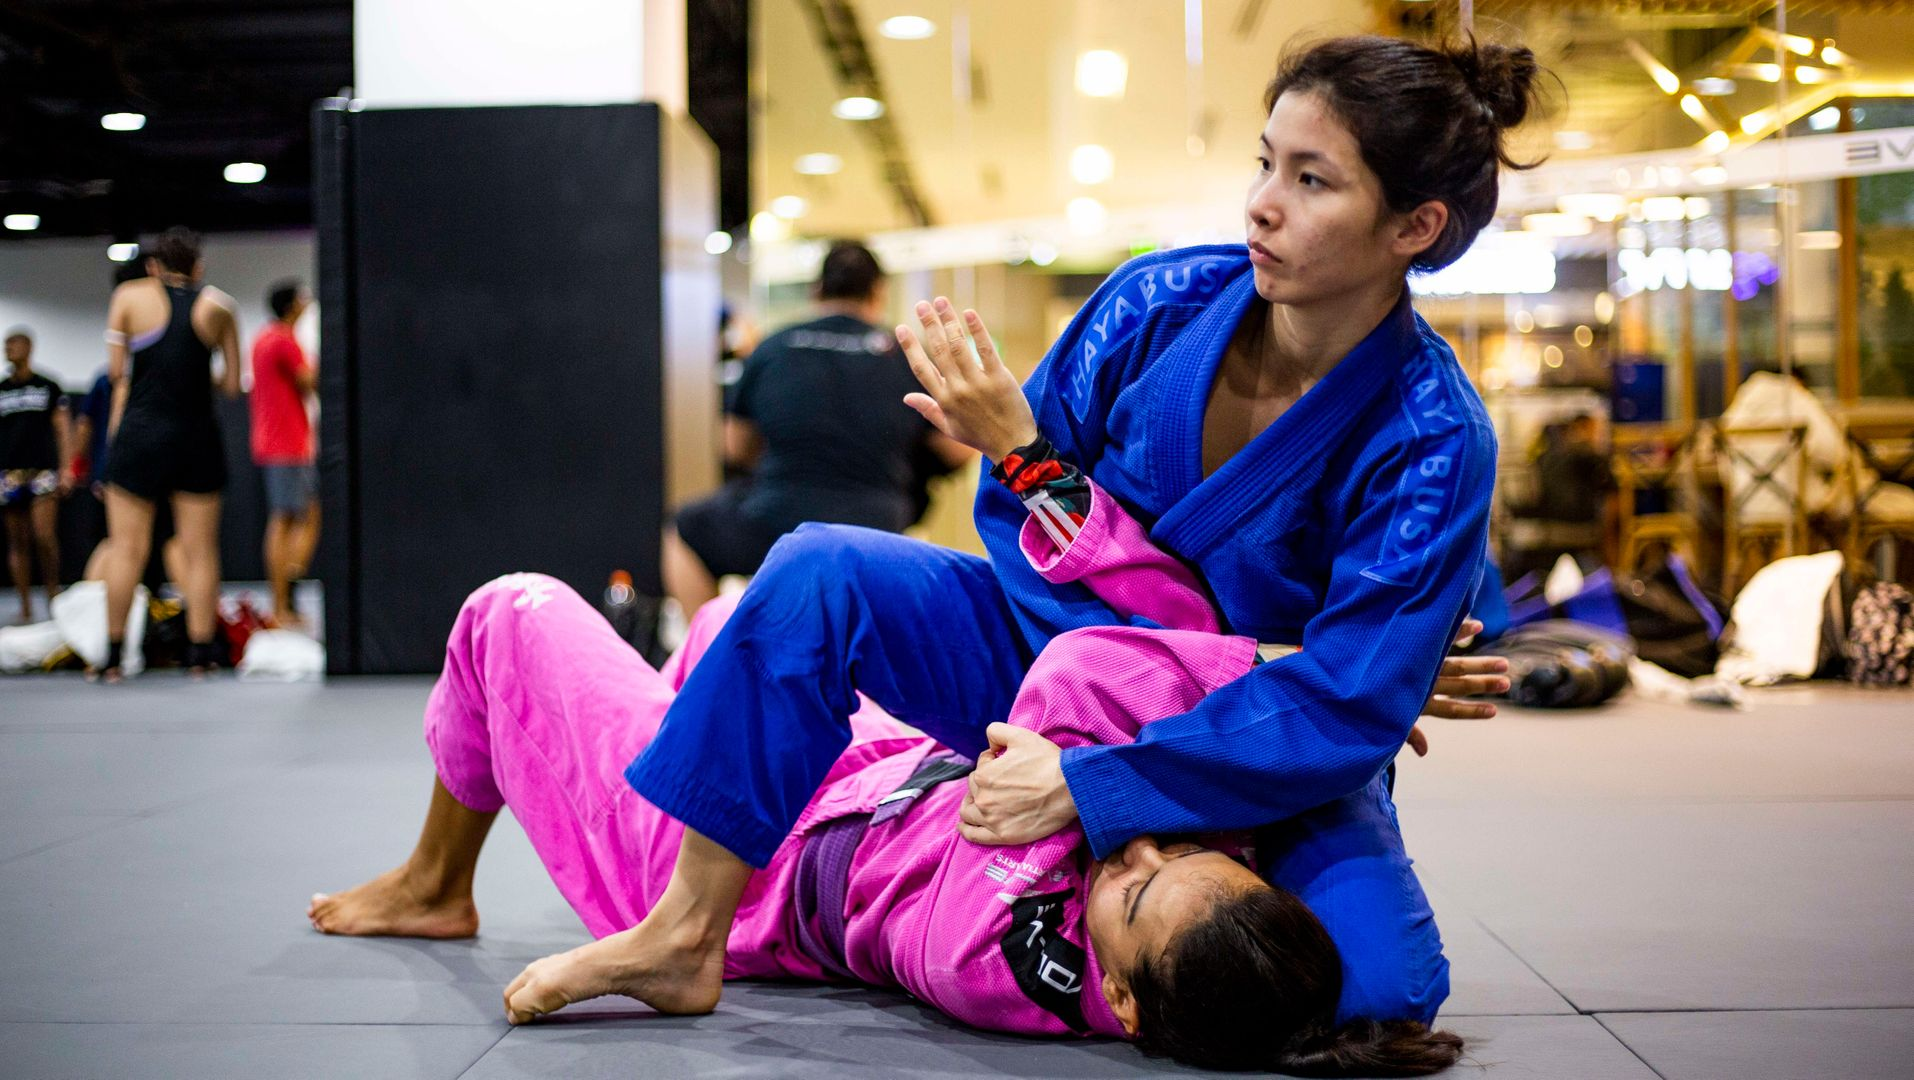 A person mounting their opponent in a BJJ class